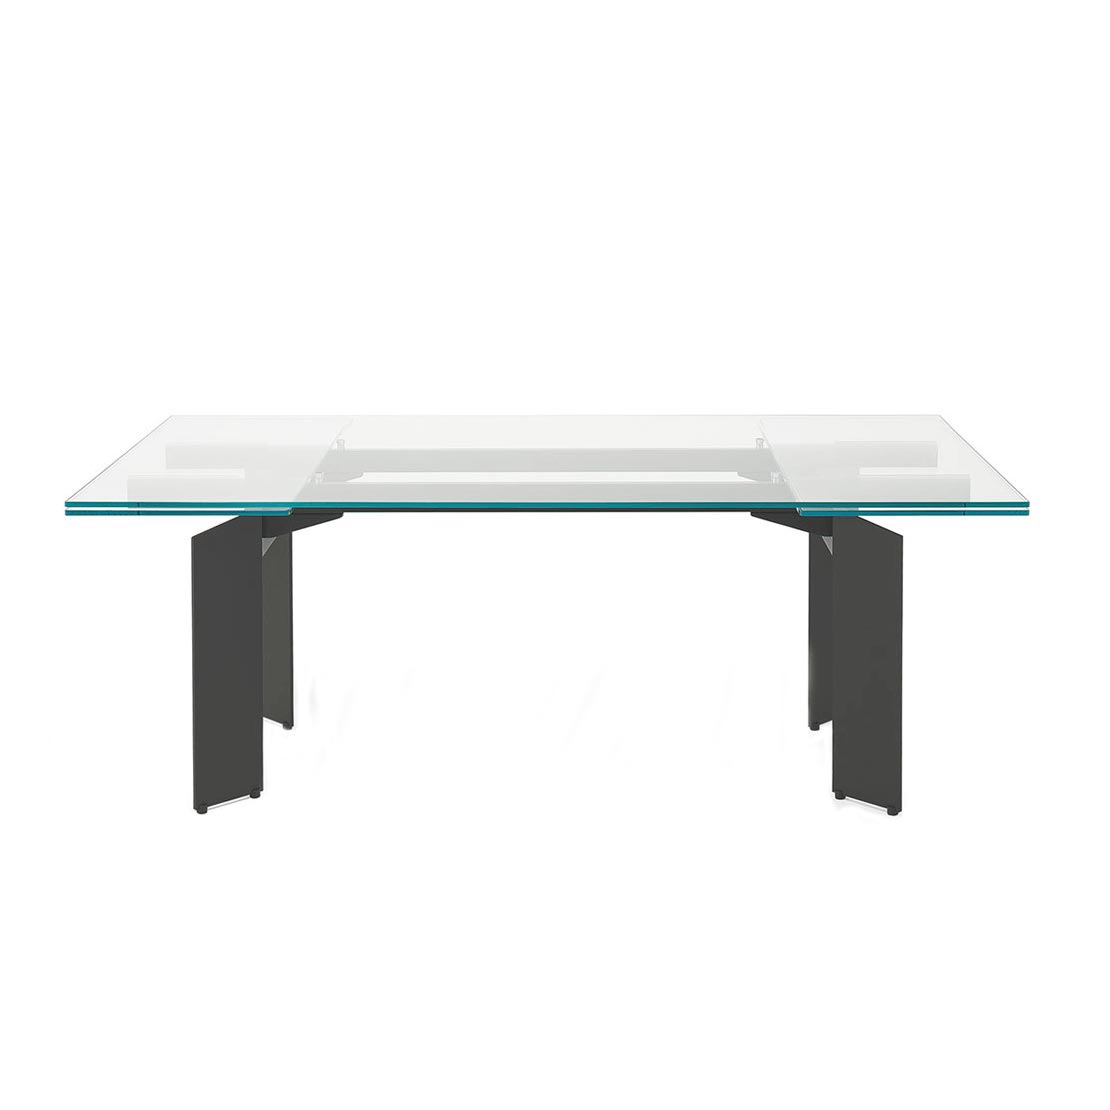 Elan Drive Extending Table by Cattelan Italia